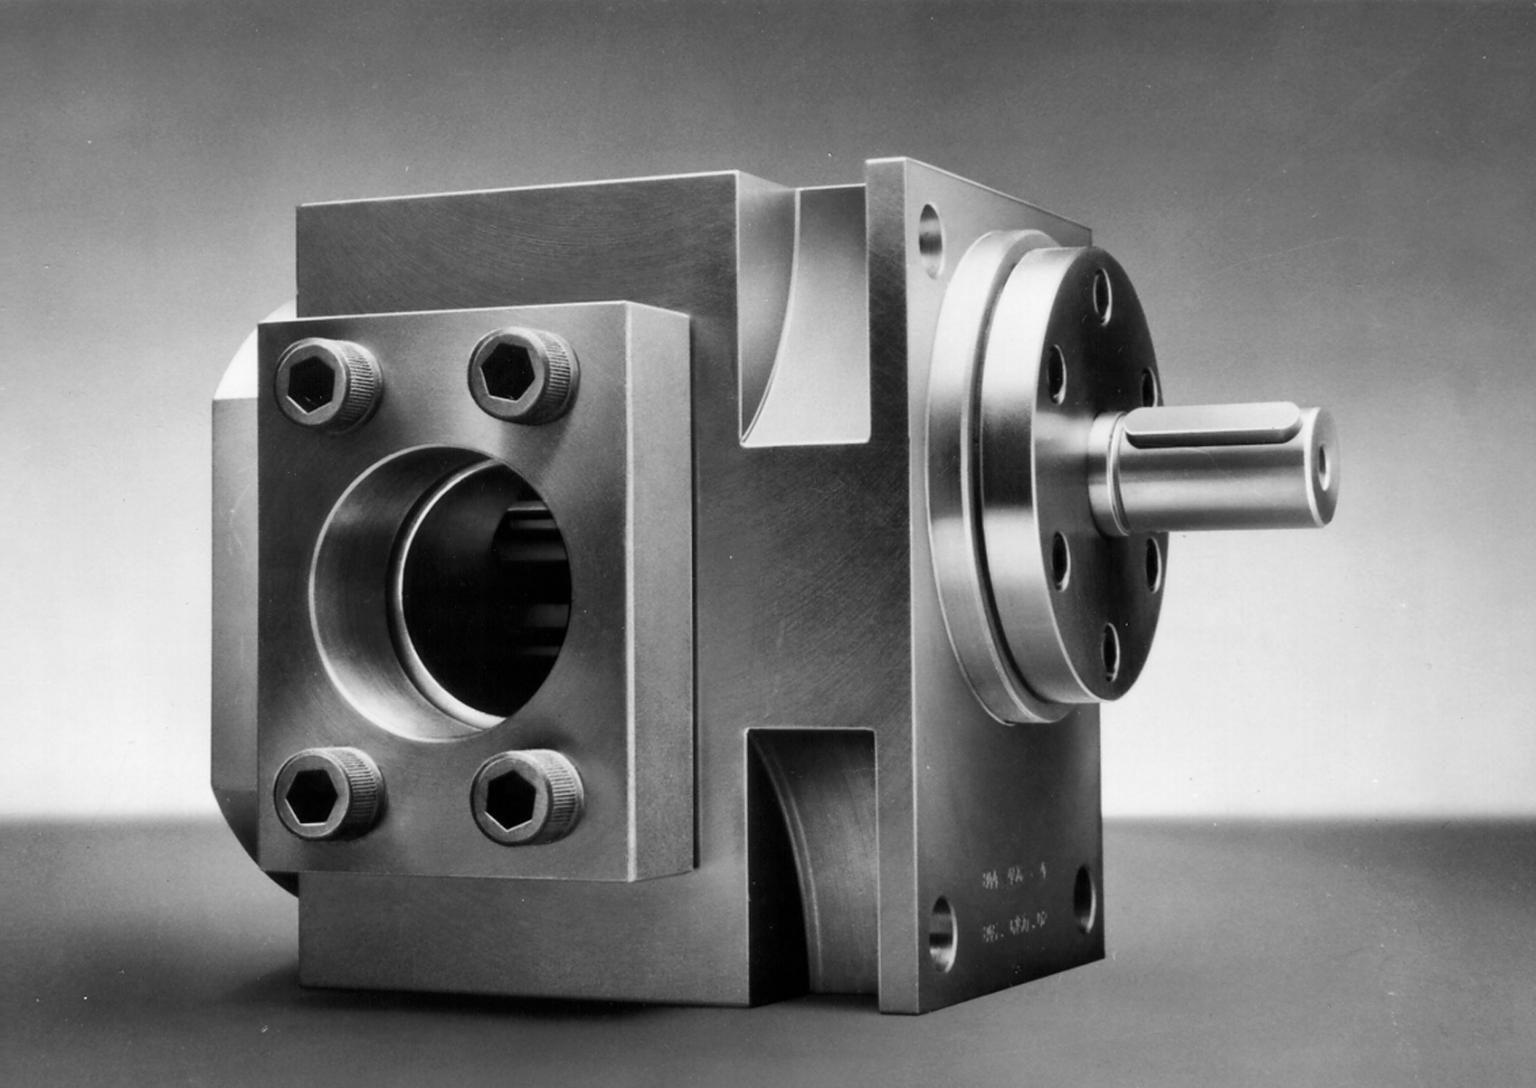 Suurmond developed a fluid dosing unit that incorporates a stainless steel gear pump for the China site